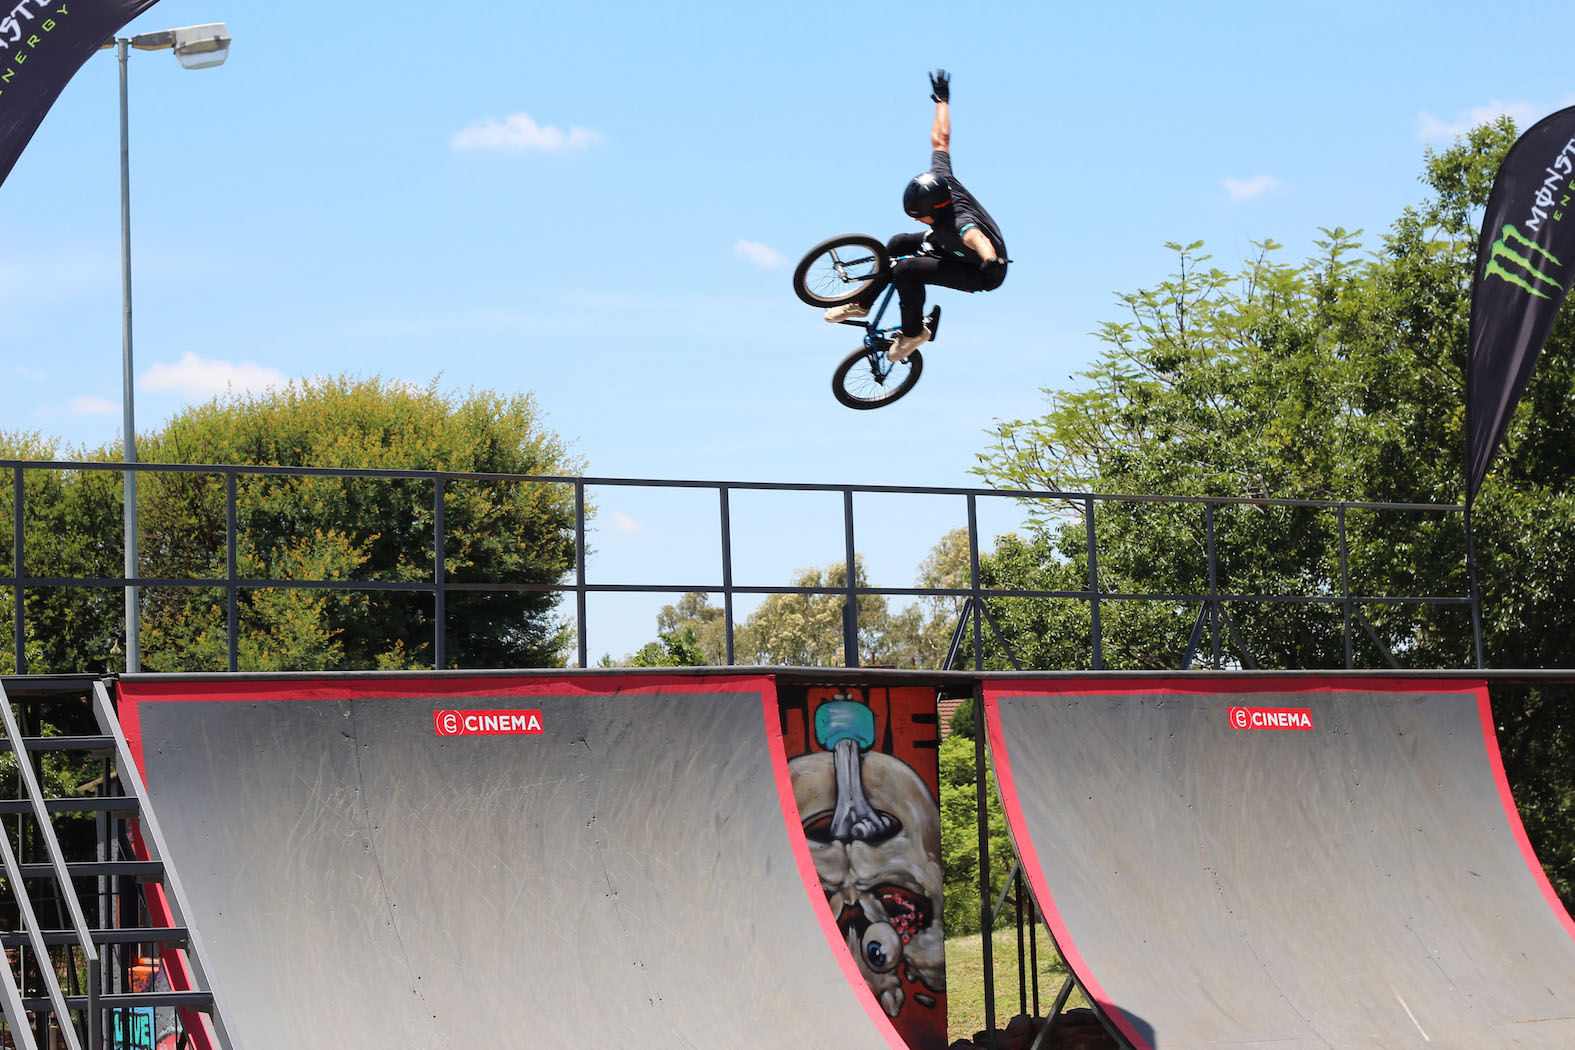 Jason Hood Tuck No hander at the Evals BMX Jam 2017